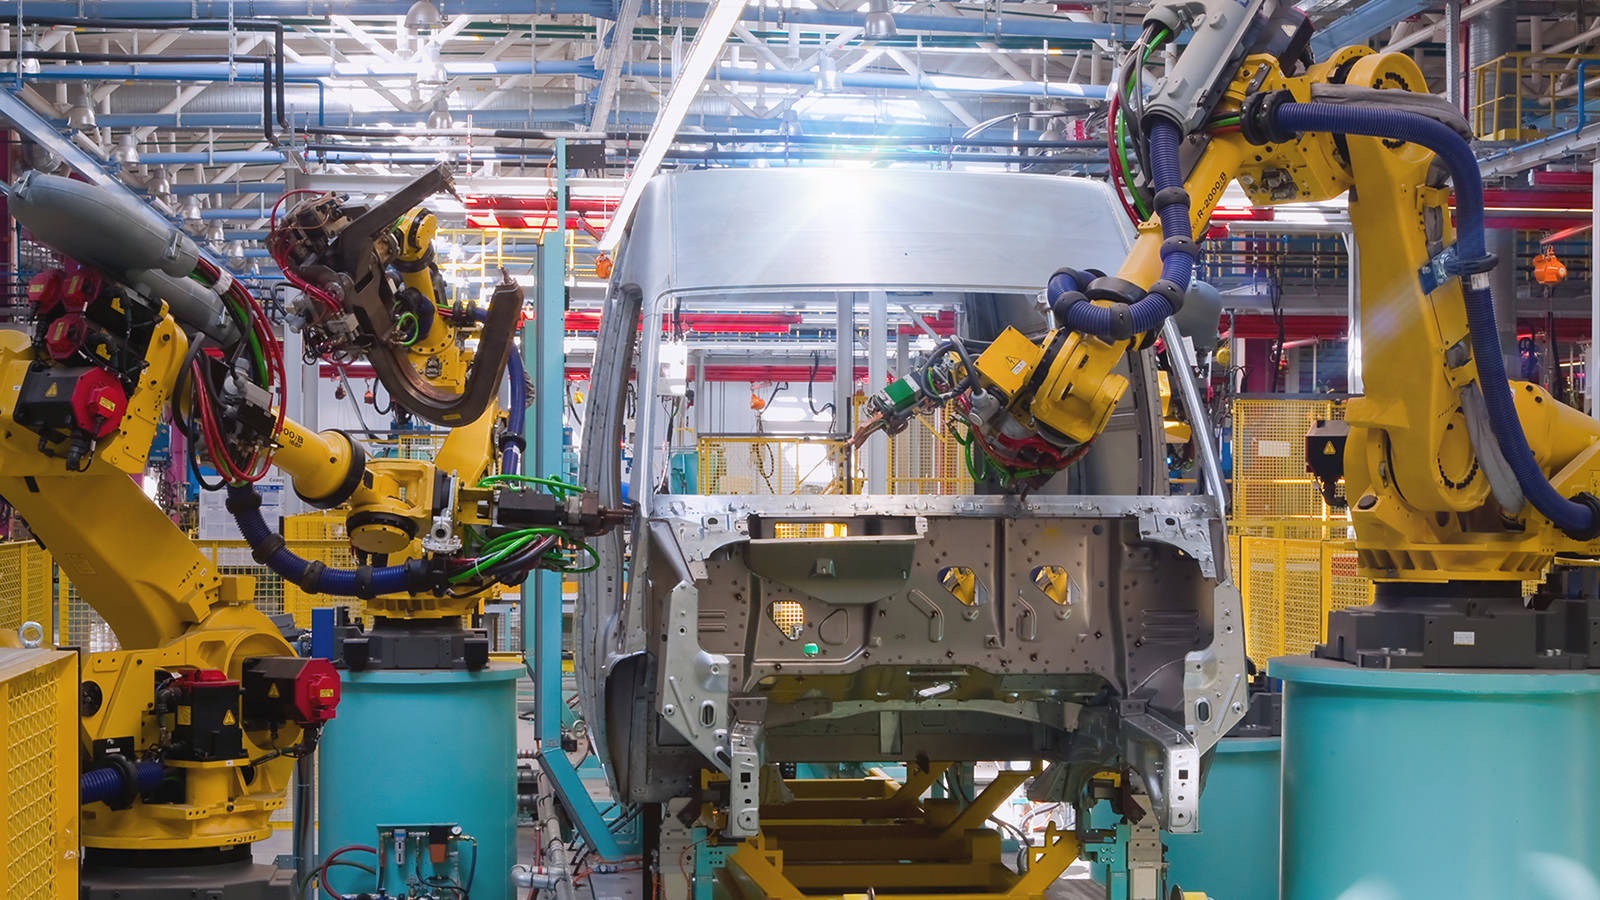 An industrial automation system for vehicle manufacturing